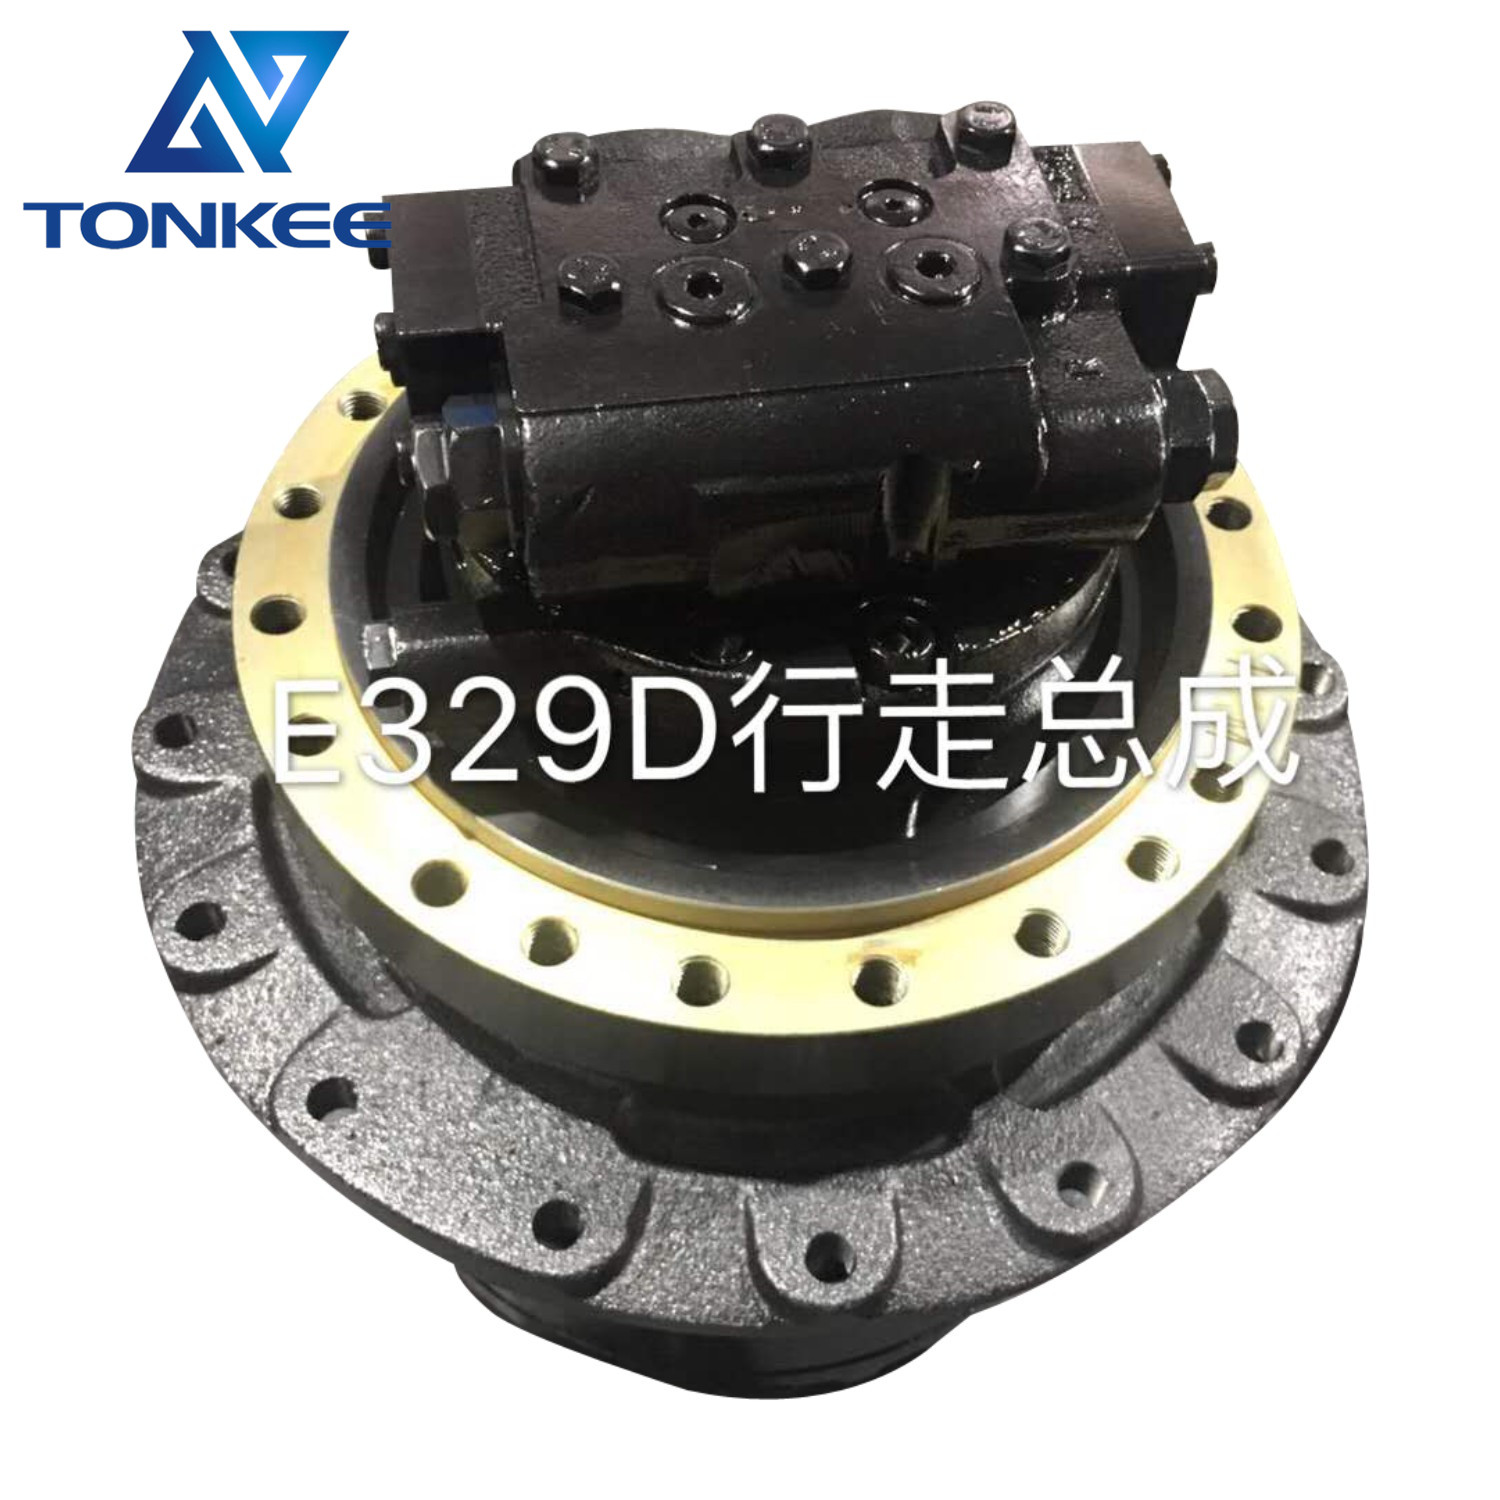 Construction Machinery Parts NEW 2159956 267-6877 378-9568 excavator final drive group E329D 329D travel motor assy